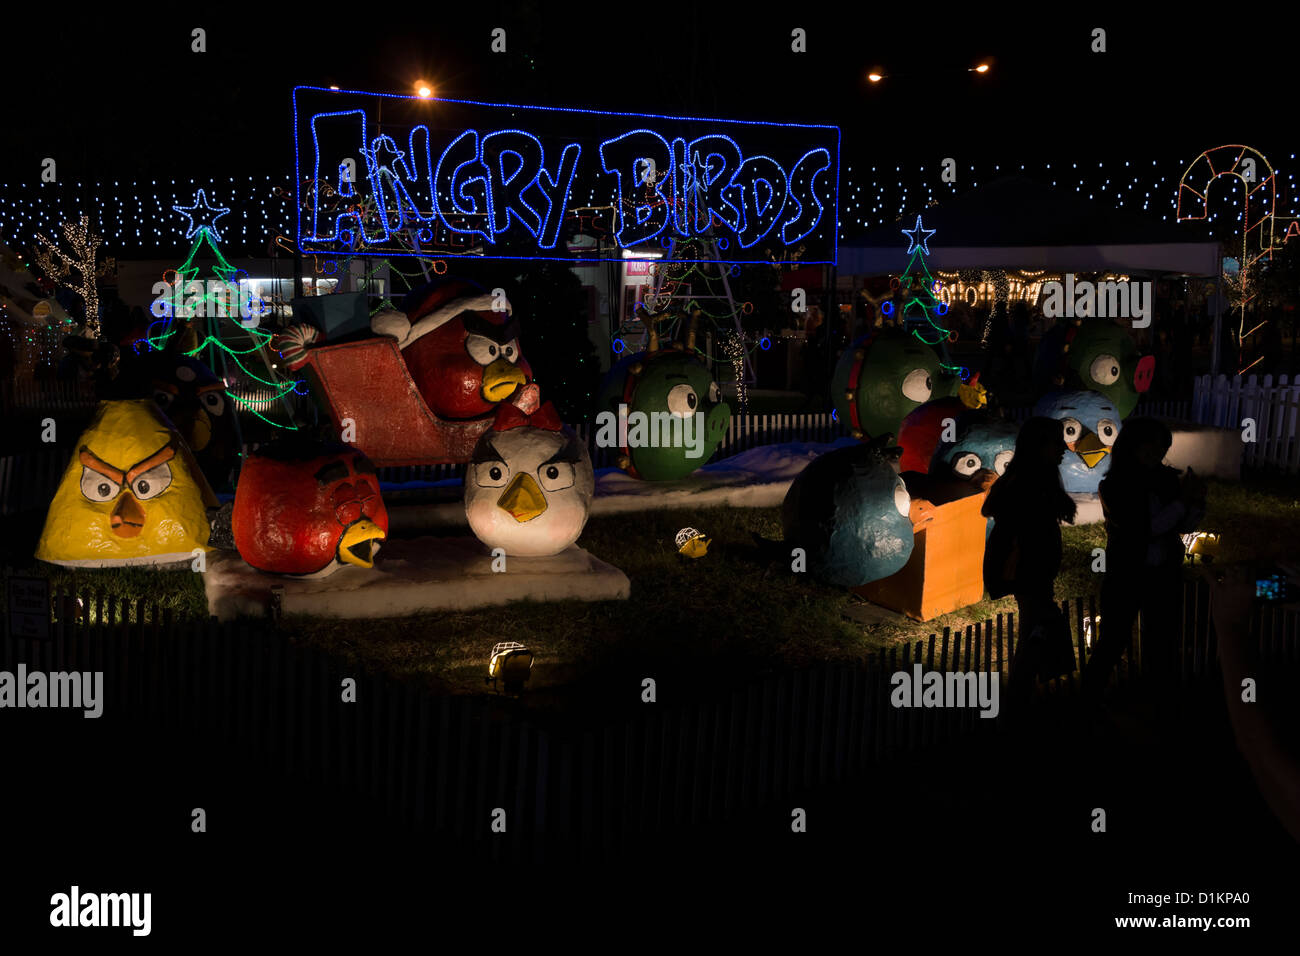 Hidalgo Christmas Lights 2021 Paper Mache Models Model Christmas Lights Hidalgo High Resolution Stock Photography And Images Alamy